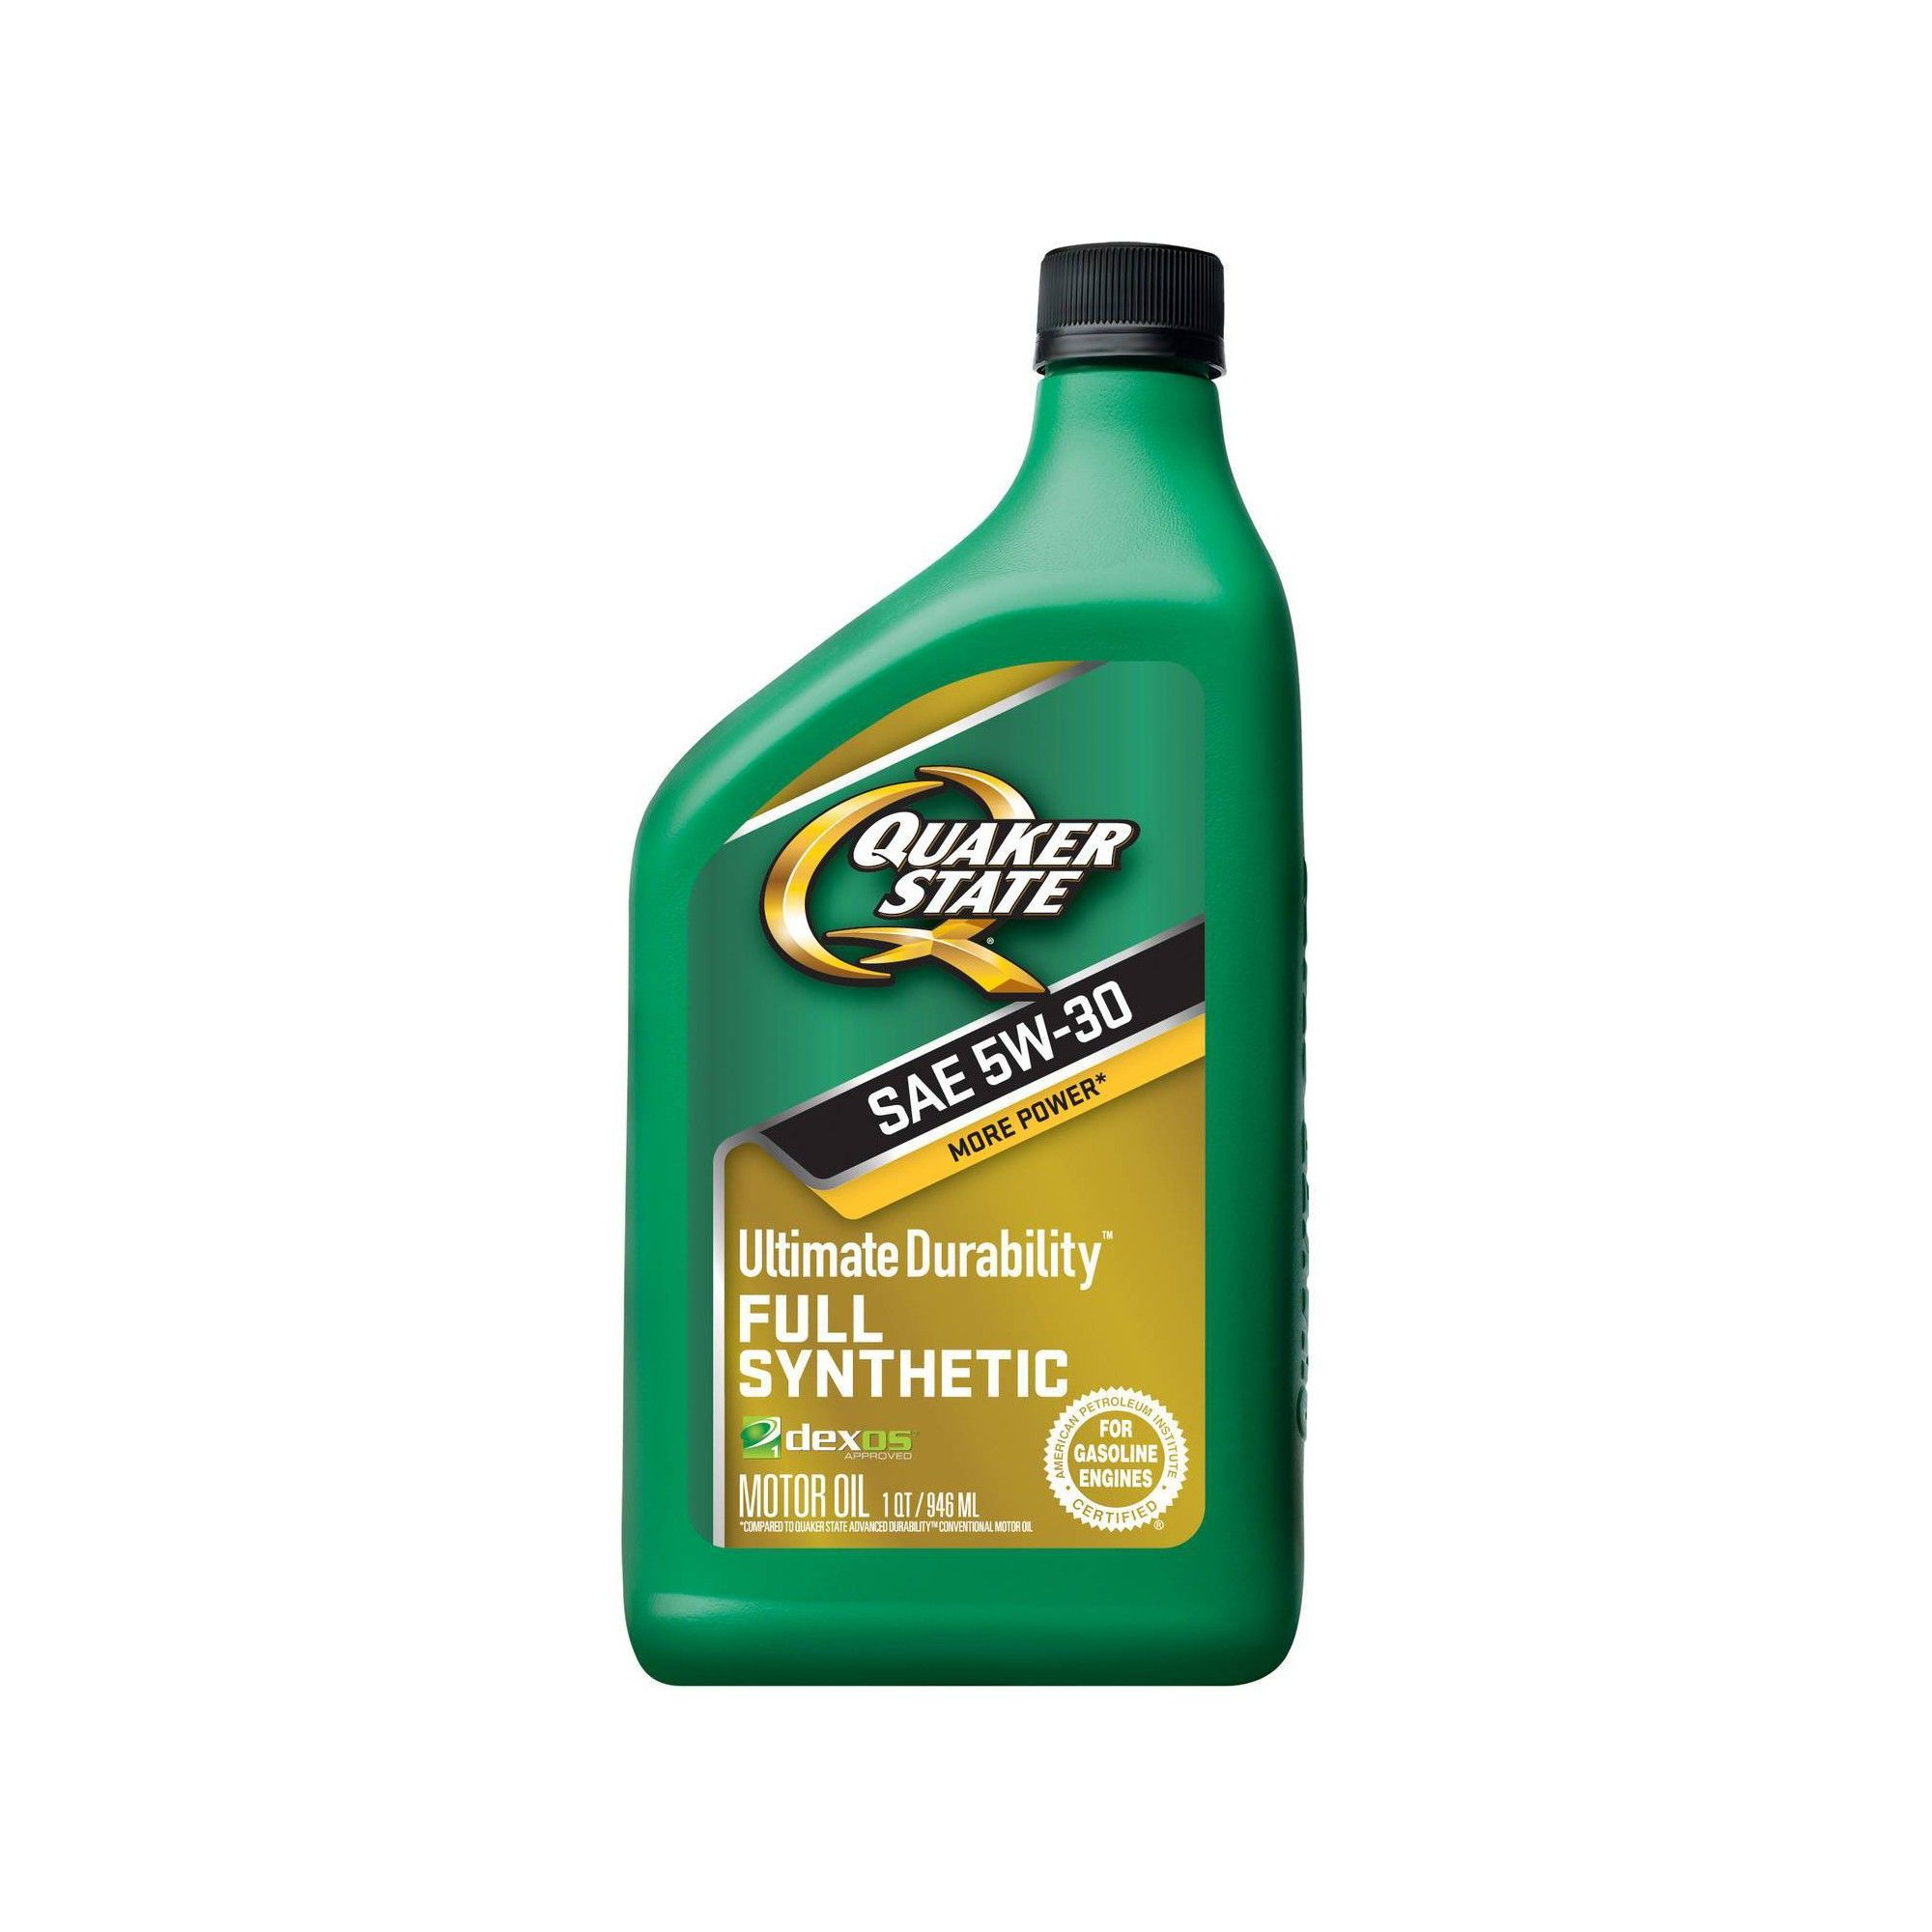 Types Of Oil For Cars >> 5w30 Synthetic Engine Oil Quaker State Oil Change